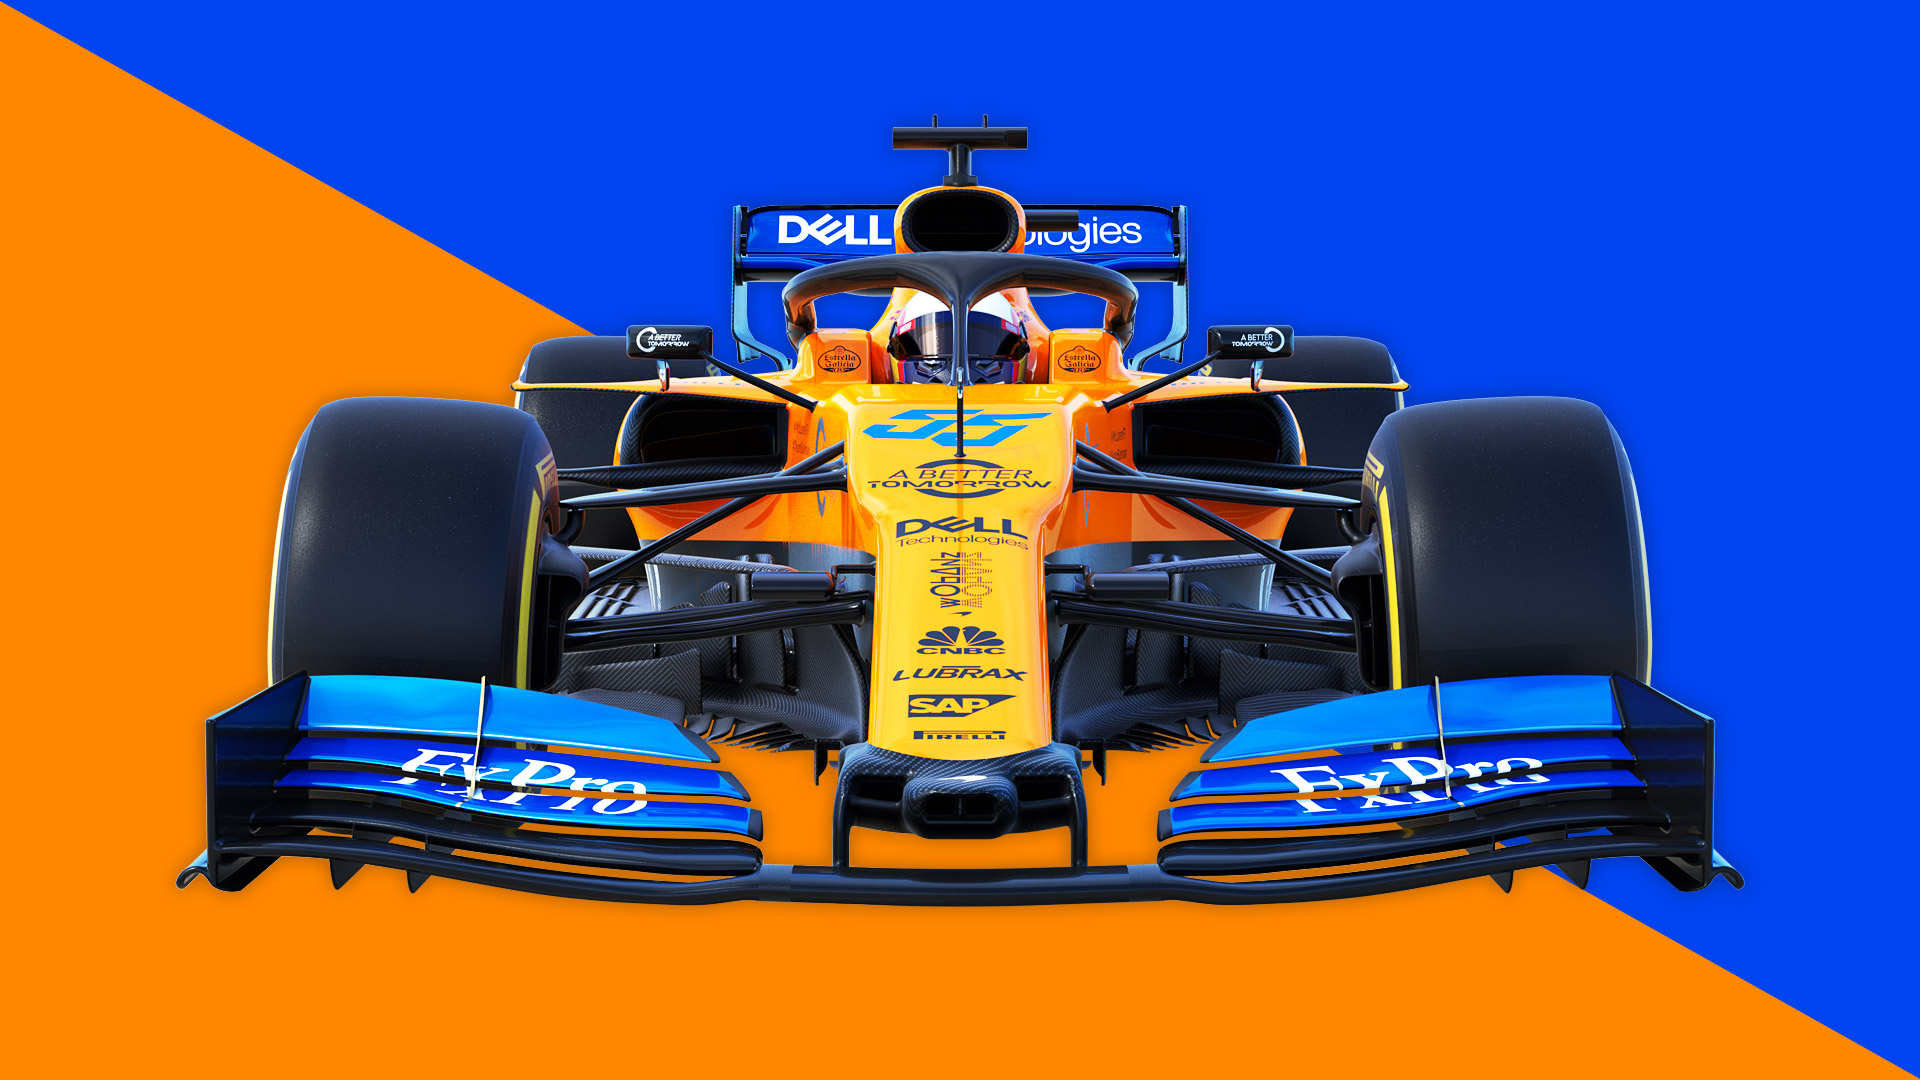 2019 f1 team previews: mclaren - best case, worst case | formula 1®